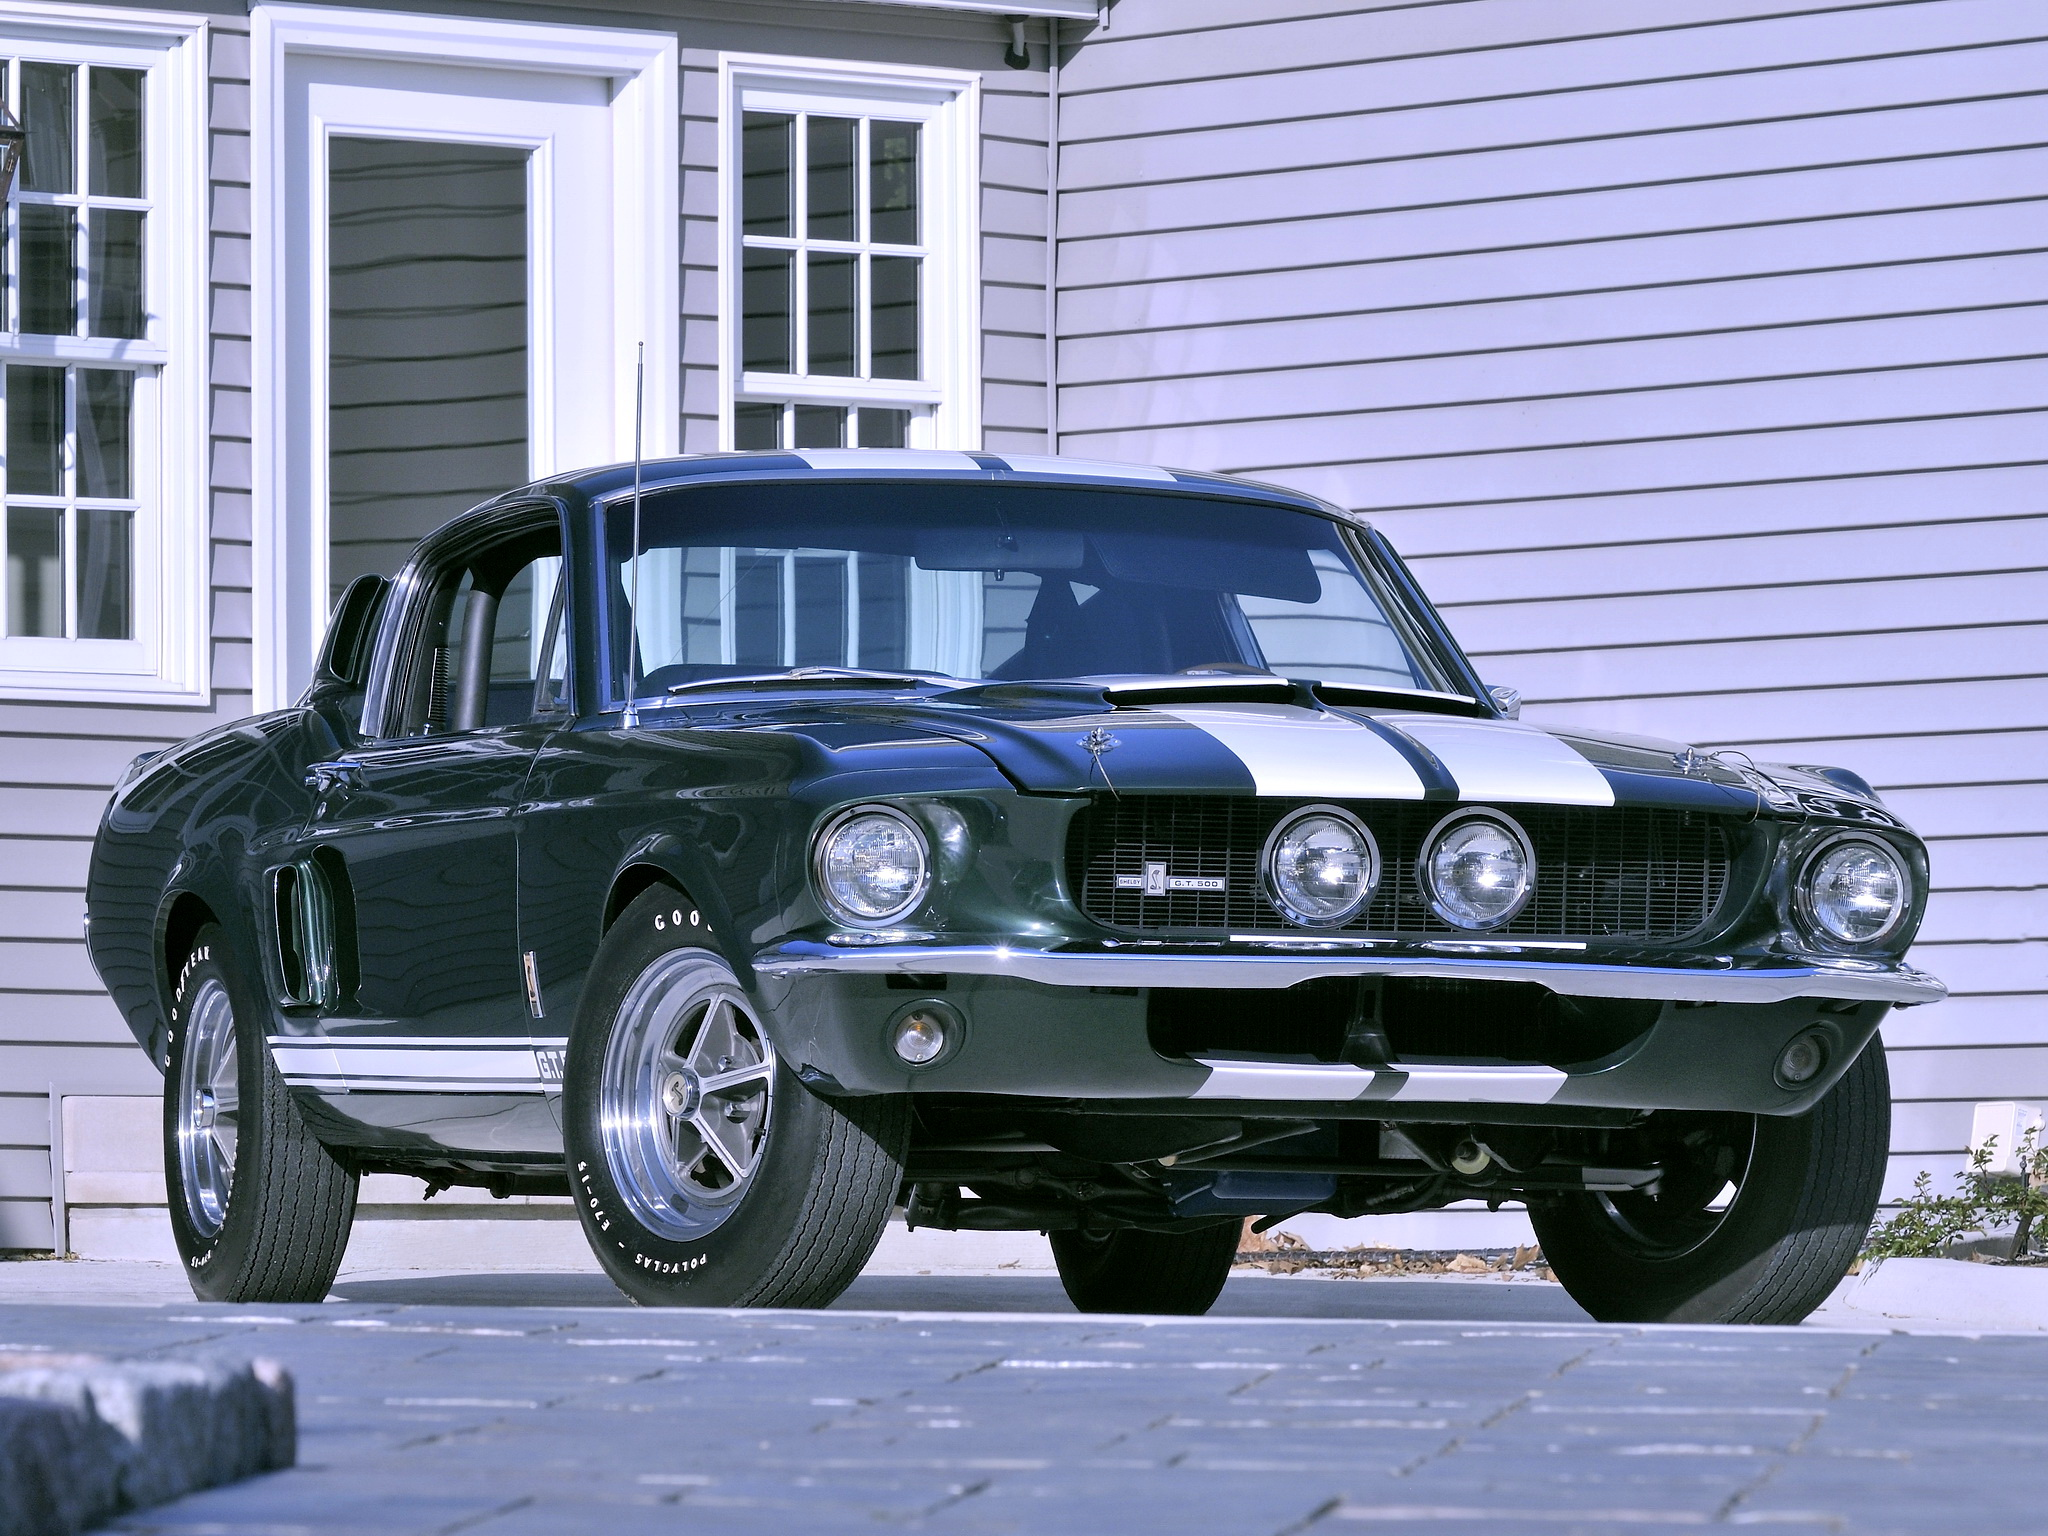 Ford Mustang 1967 Shelby Gt500 Wallpaper